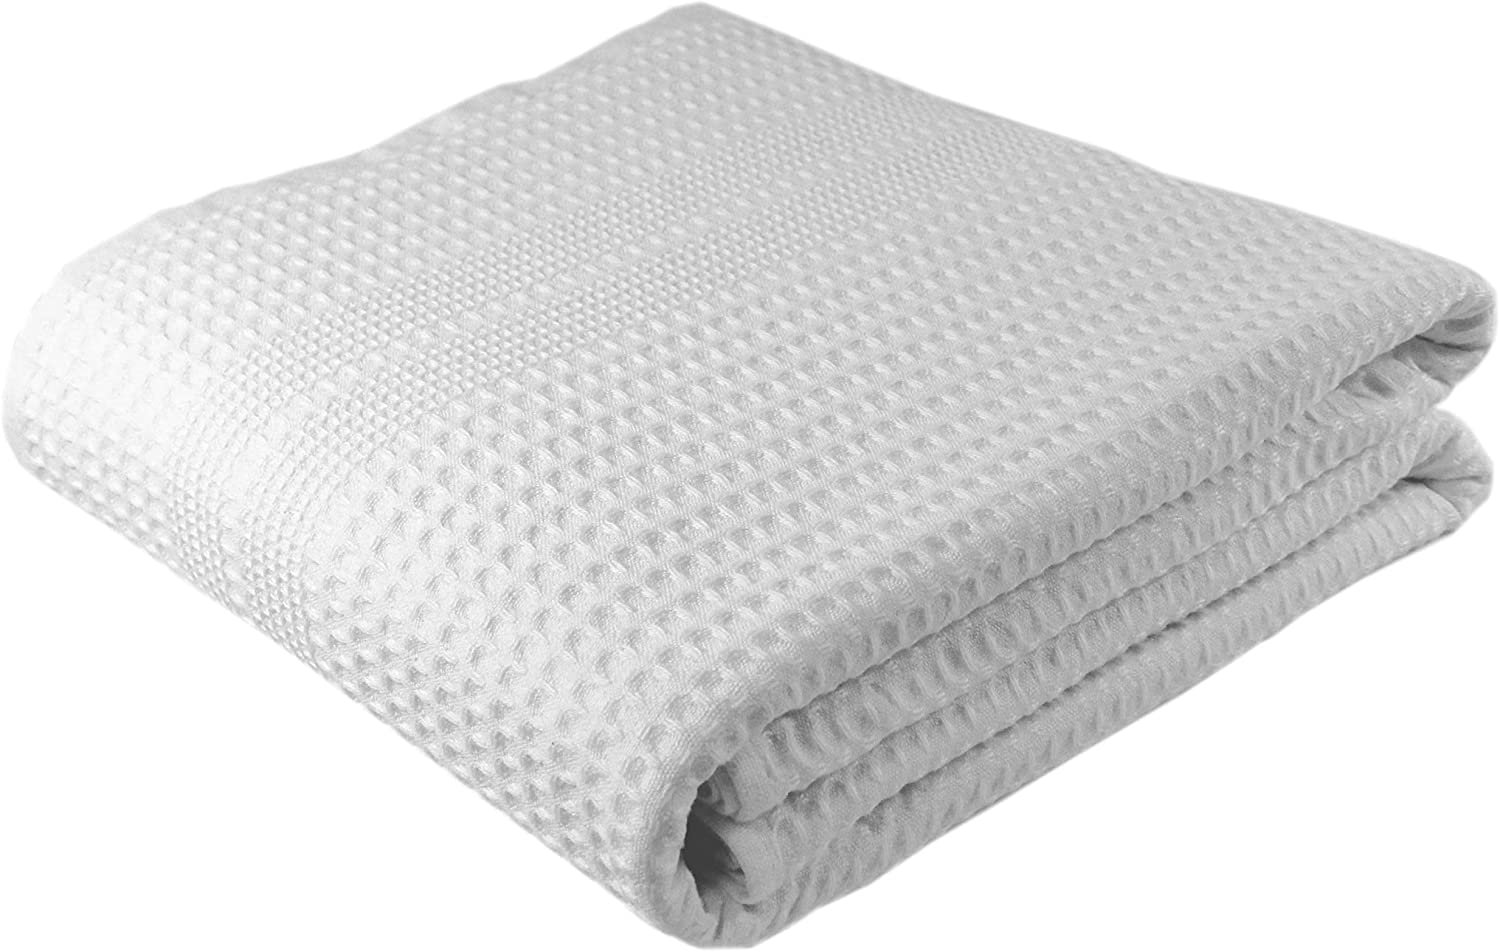 Premium Large Waffle Weave Bath Sheet 100% Natural Cotton – Generous Size Lightweight Ultra Absorbent Quick Drying Fade Resistant (White): Kitchen & Dining